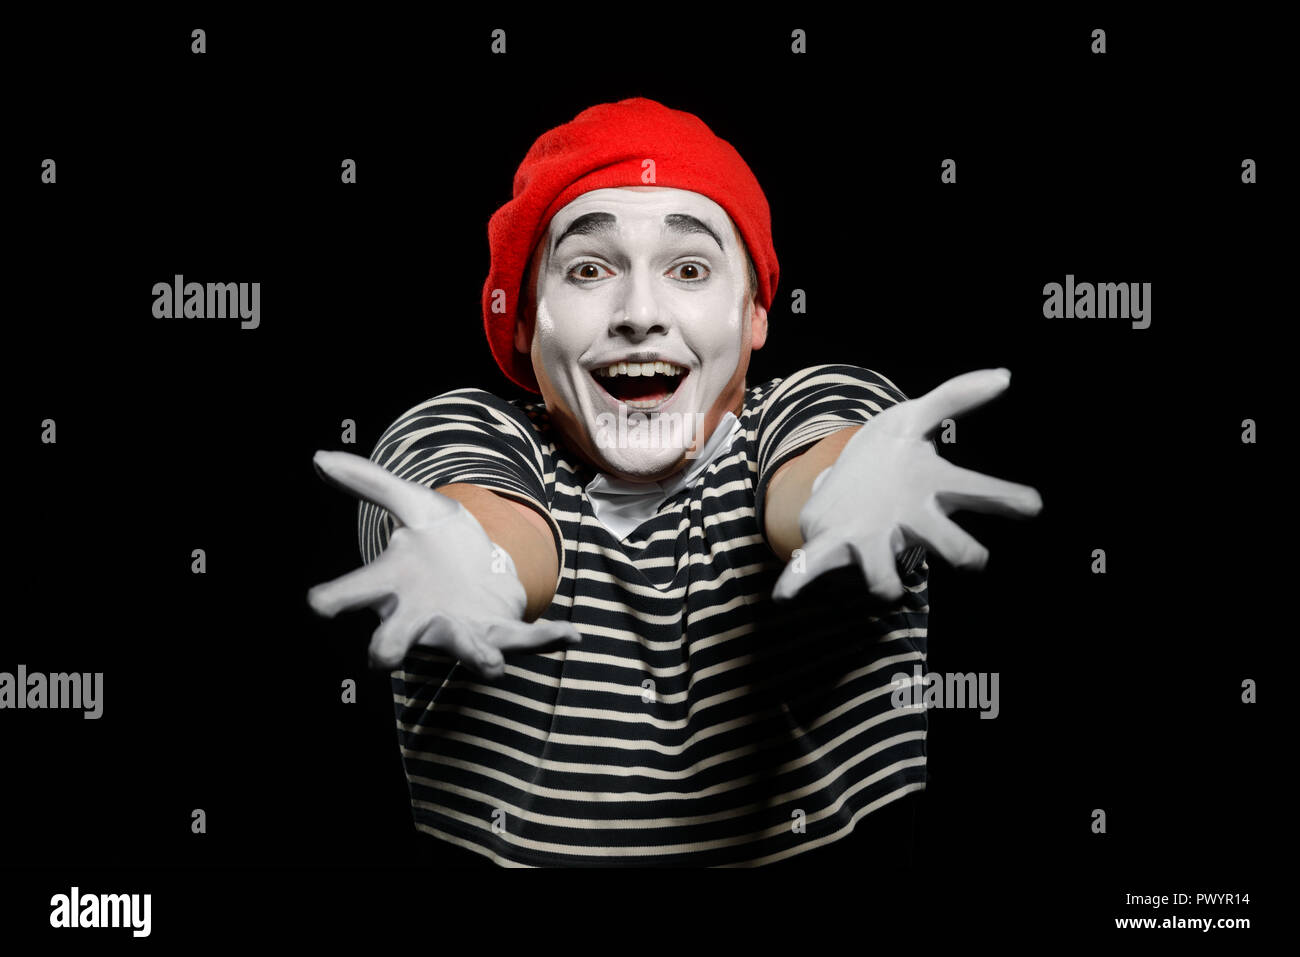 Mime stretched out his hands - Stock Image